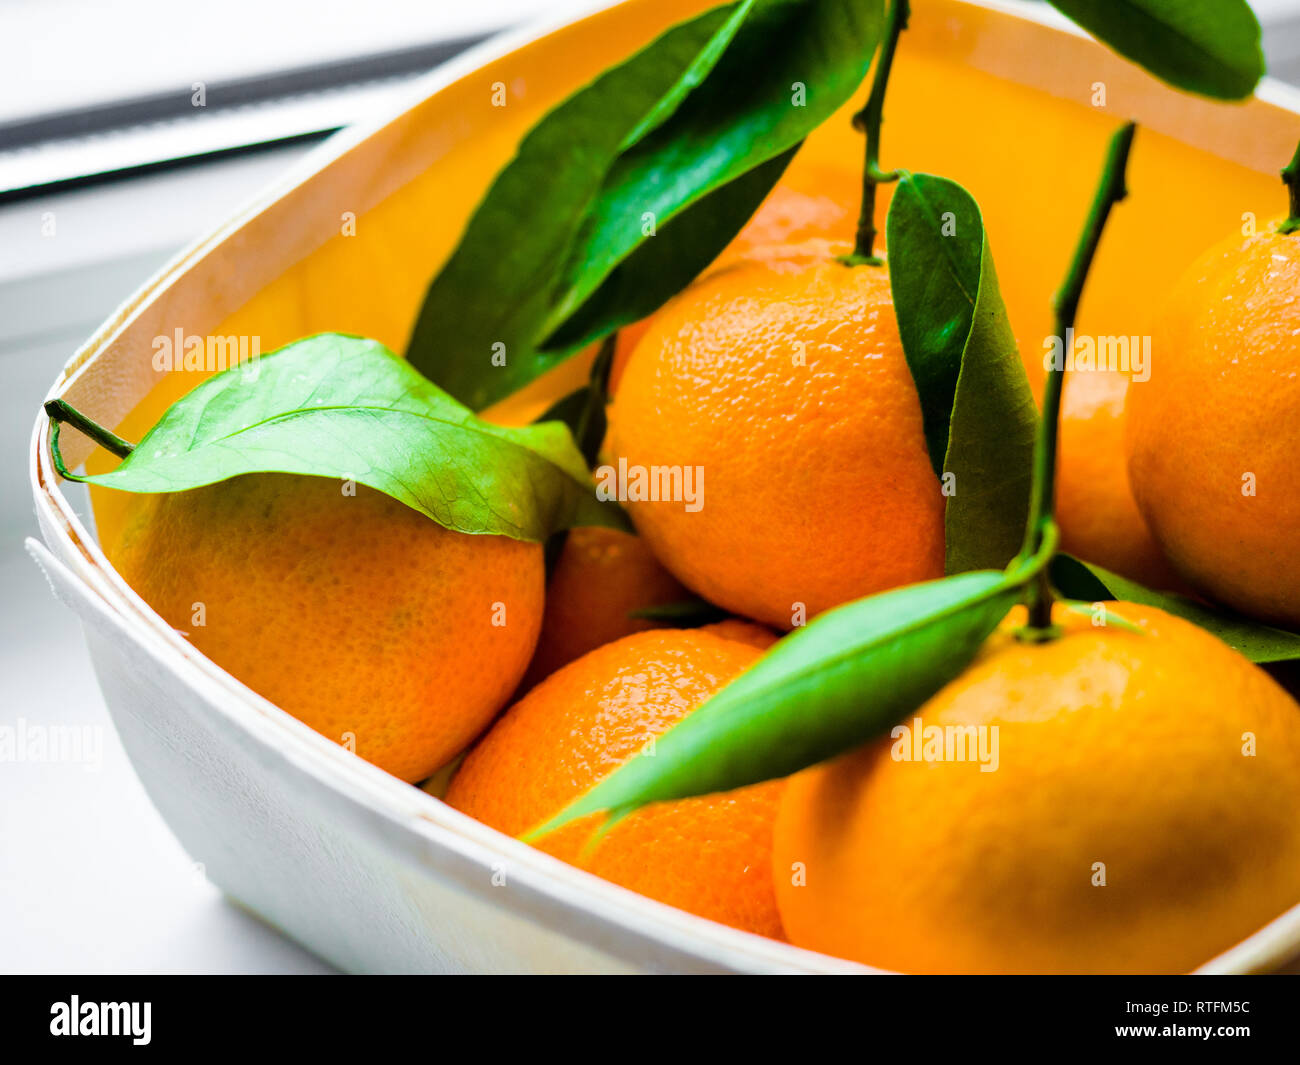 Some oranges with leaves in a basket, Orange Tangerines in a basket on a white background. - Stock Image